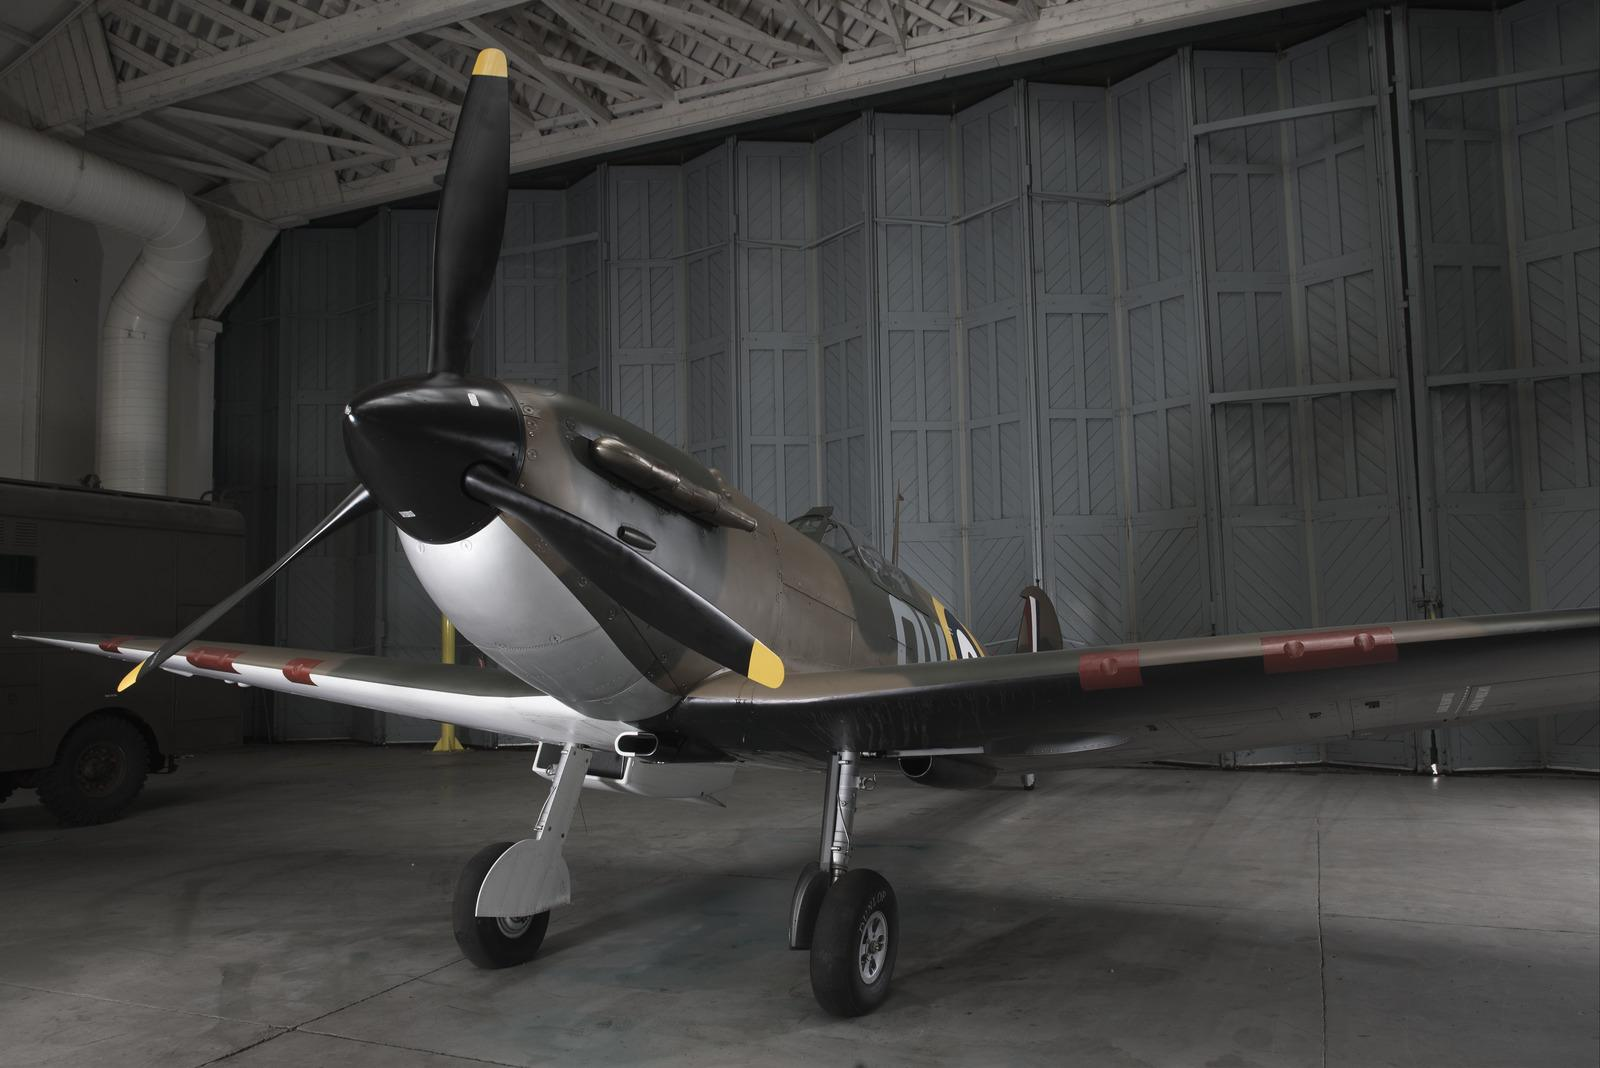 Photograph of Spitfire N3200, an airworthy combat veteran Spitfire in the Battle of Britain hangar at IWM Duxford